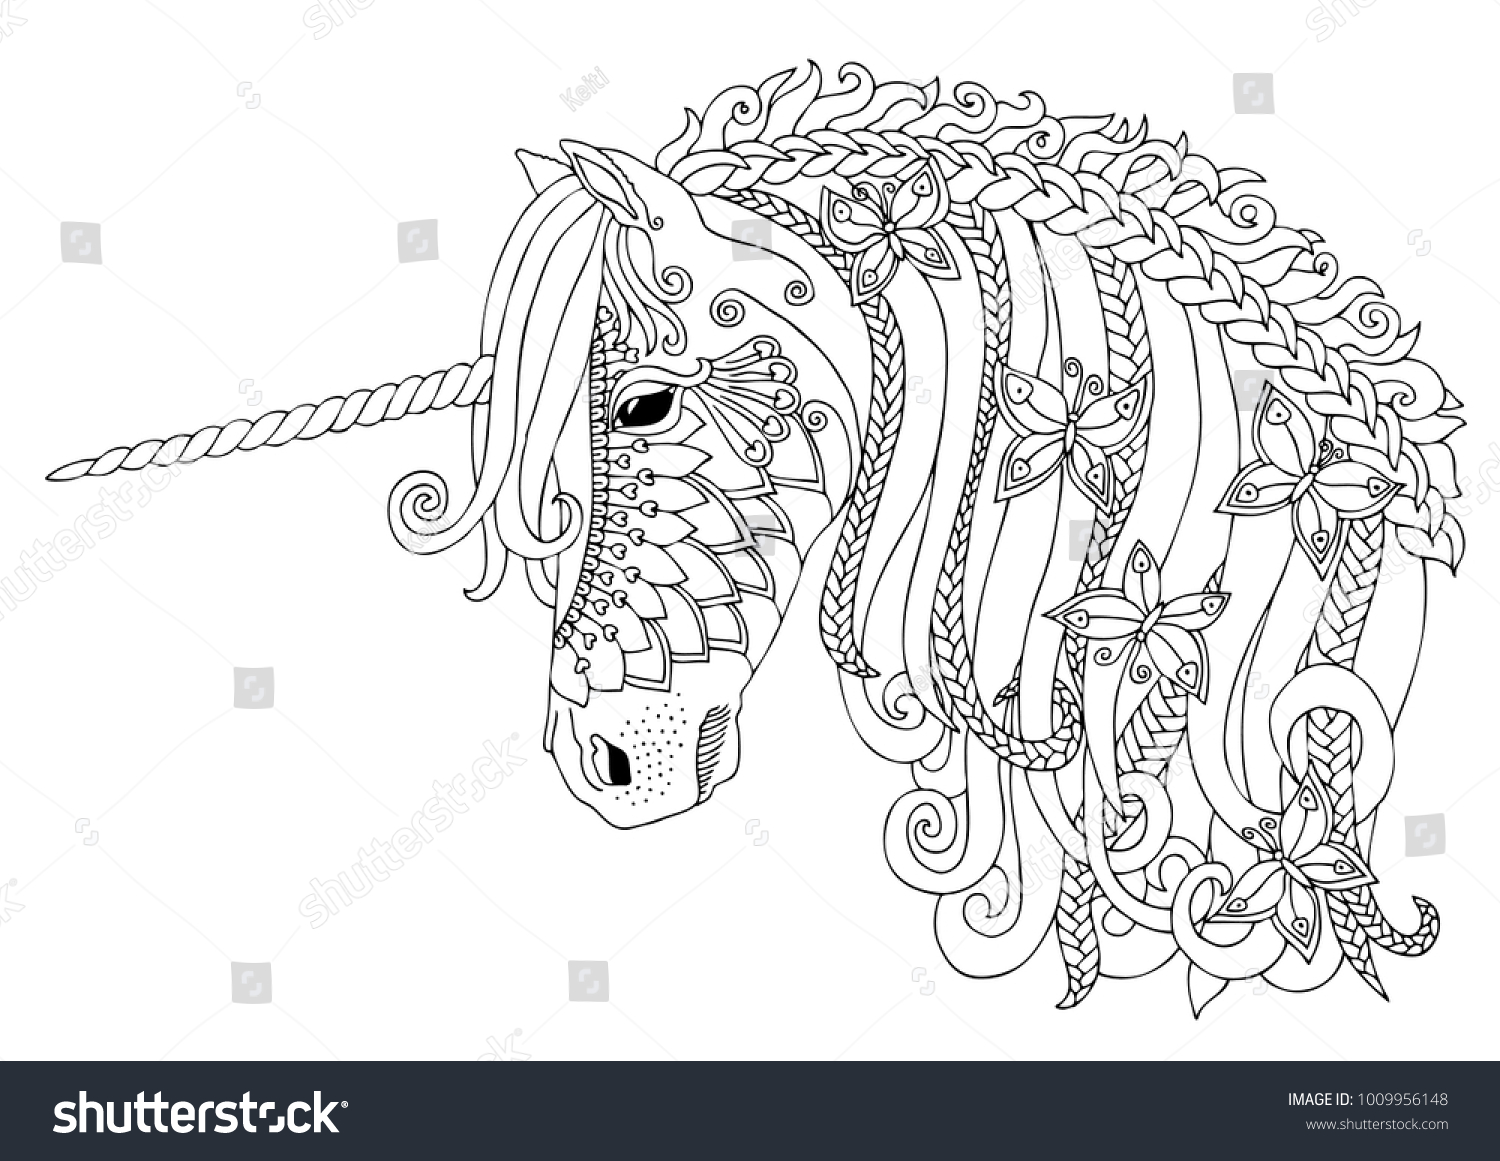 Hand Drawn Fantasy Horse Sketch For Anti Stress Adult Coloring